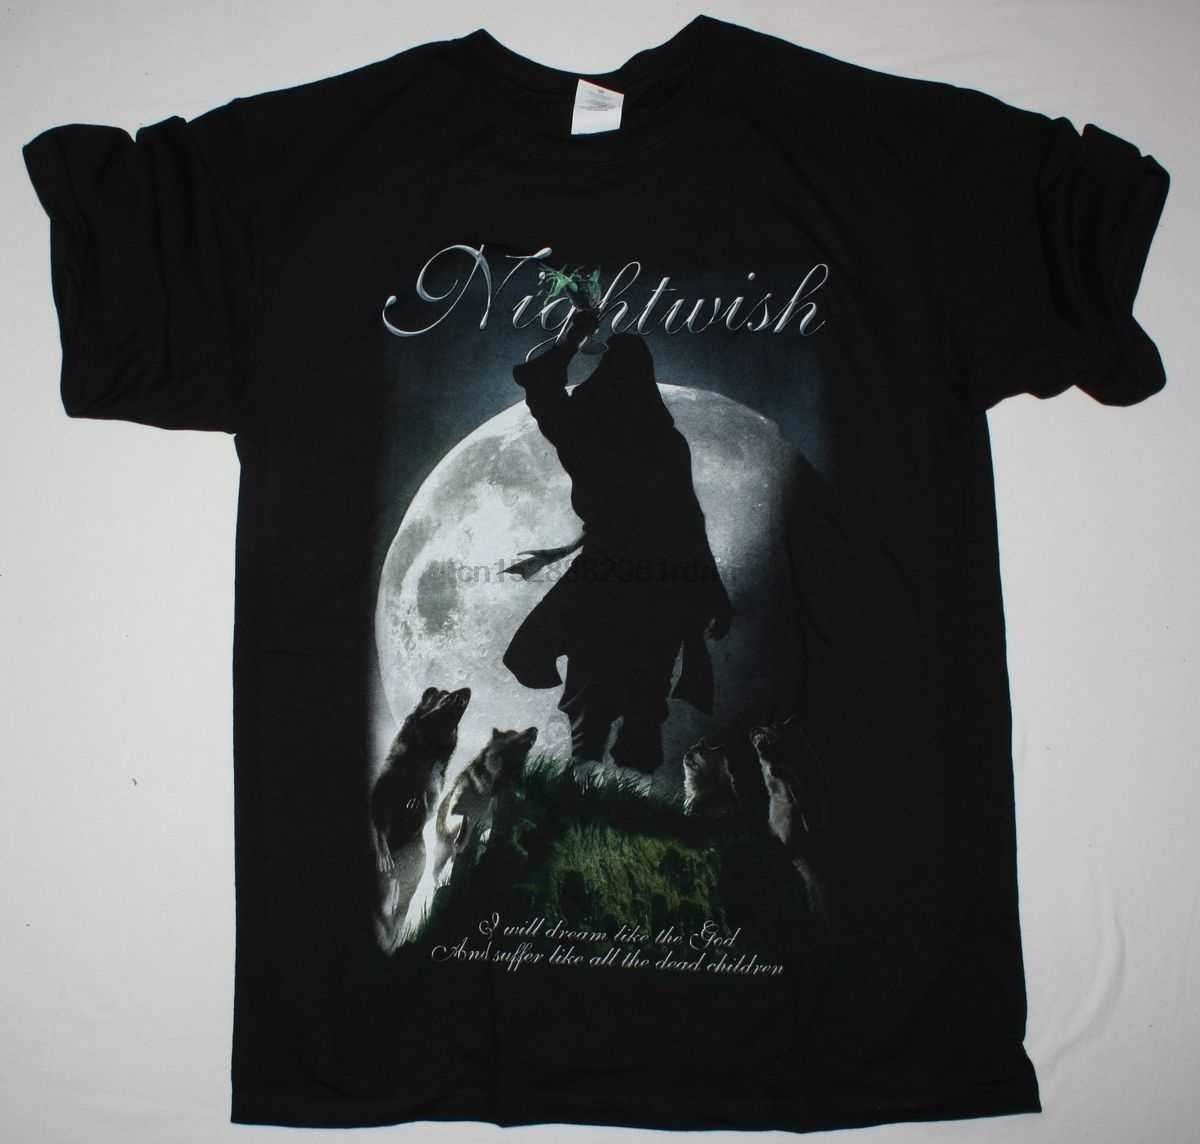 NIGHTWISH SEVEN DAYS TO THE WOLVES BLACK T SHIRT WITHIN TEMPTATION TARJA TURUNEN  100% cotton tee shirt  tops wholesale tee